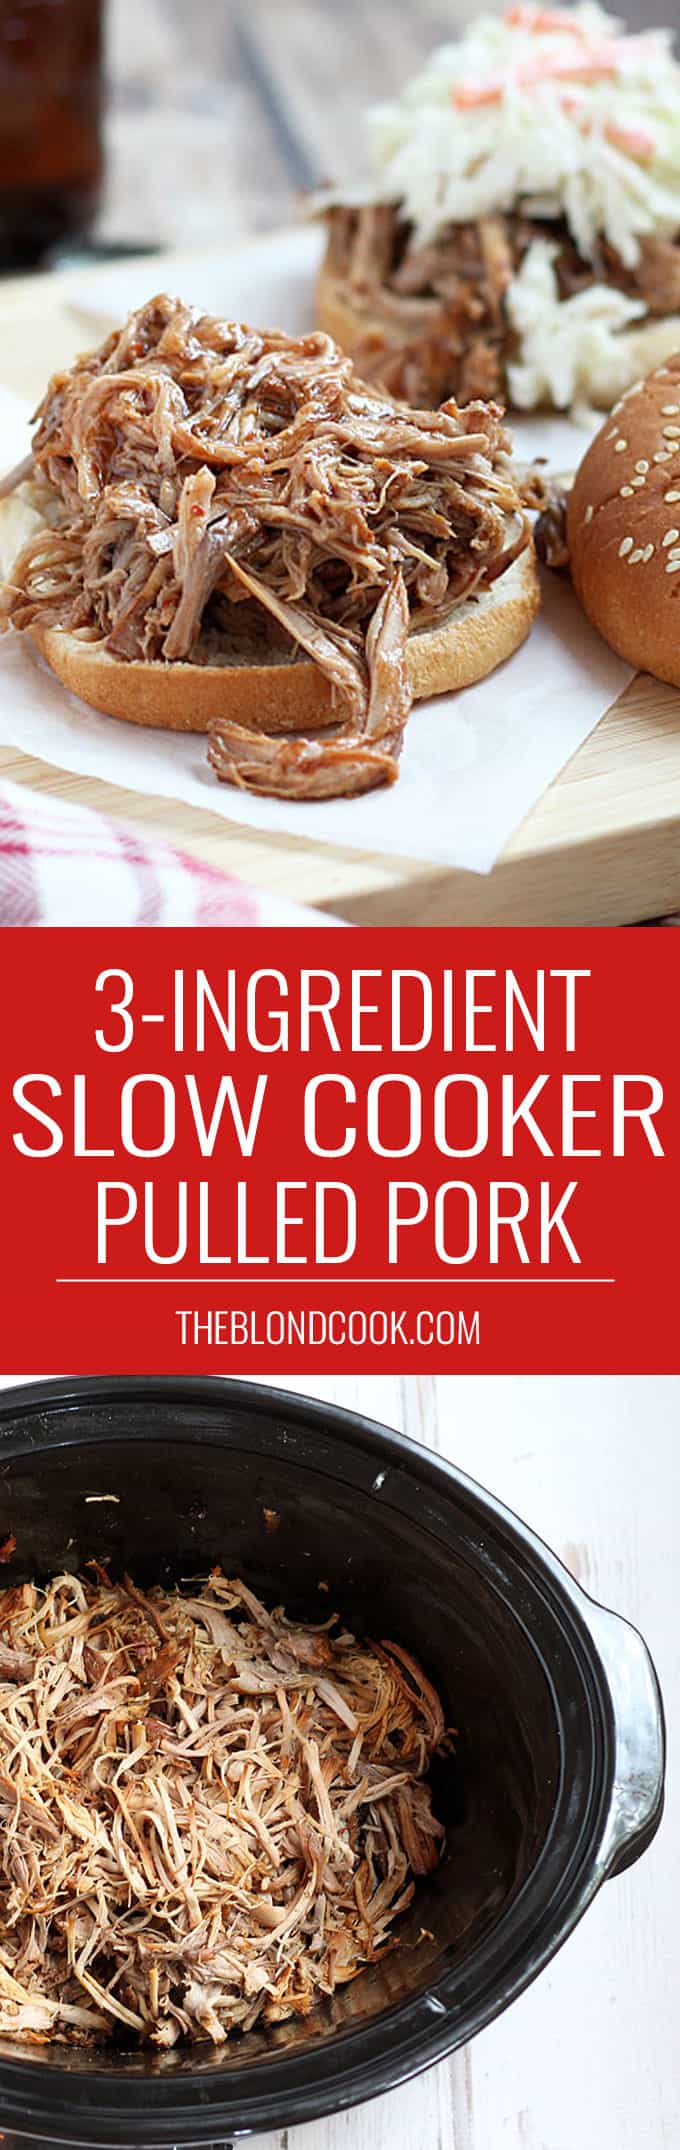 3-Ingredient Pulled Pork - Just THREE ingredients for the easiest and most flavorful barbecue!